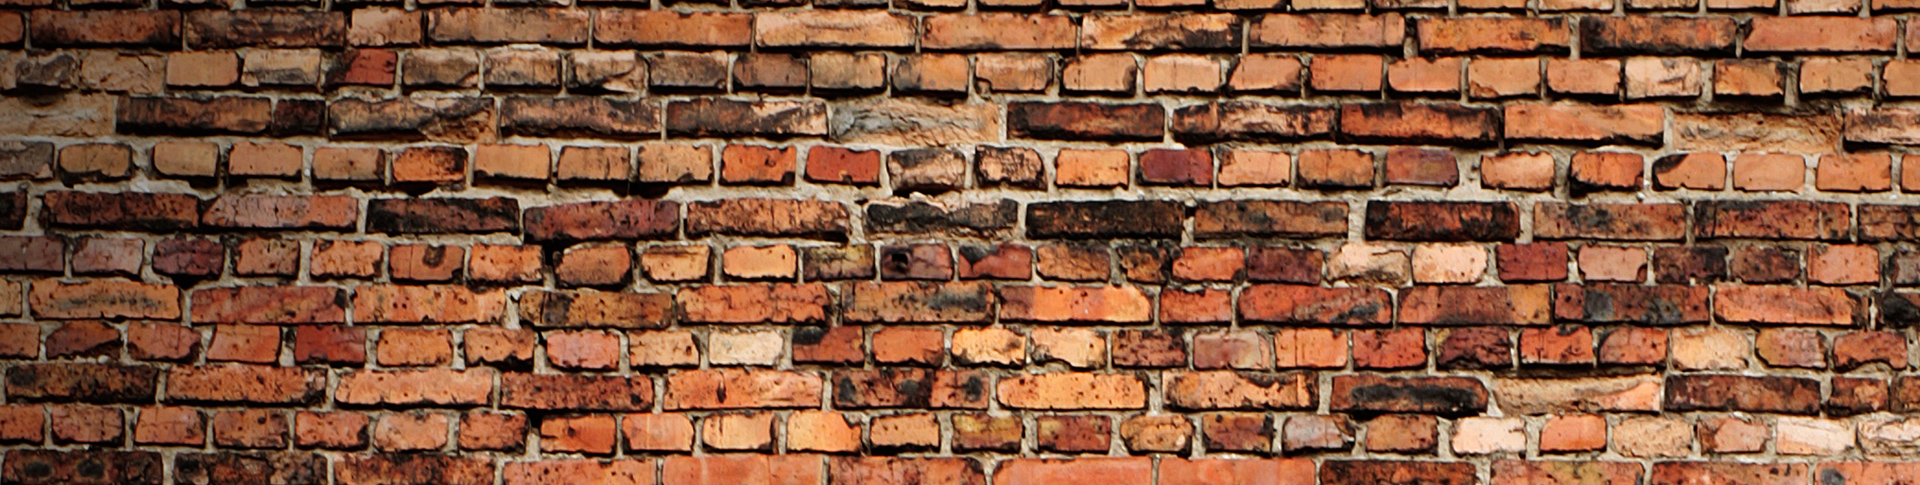 BrickWall_First_Palmetto2.png.jpg